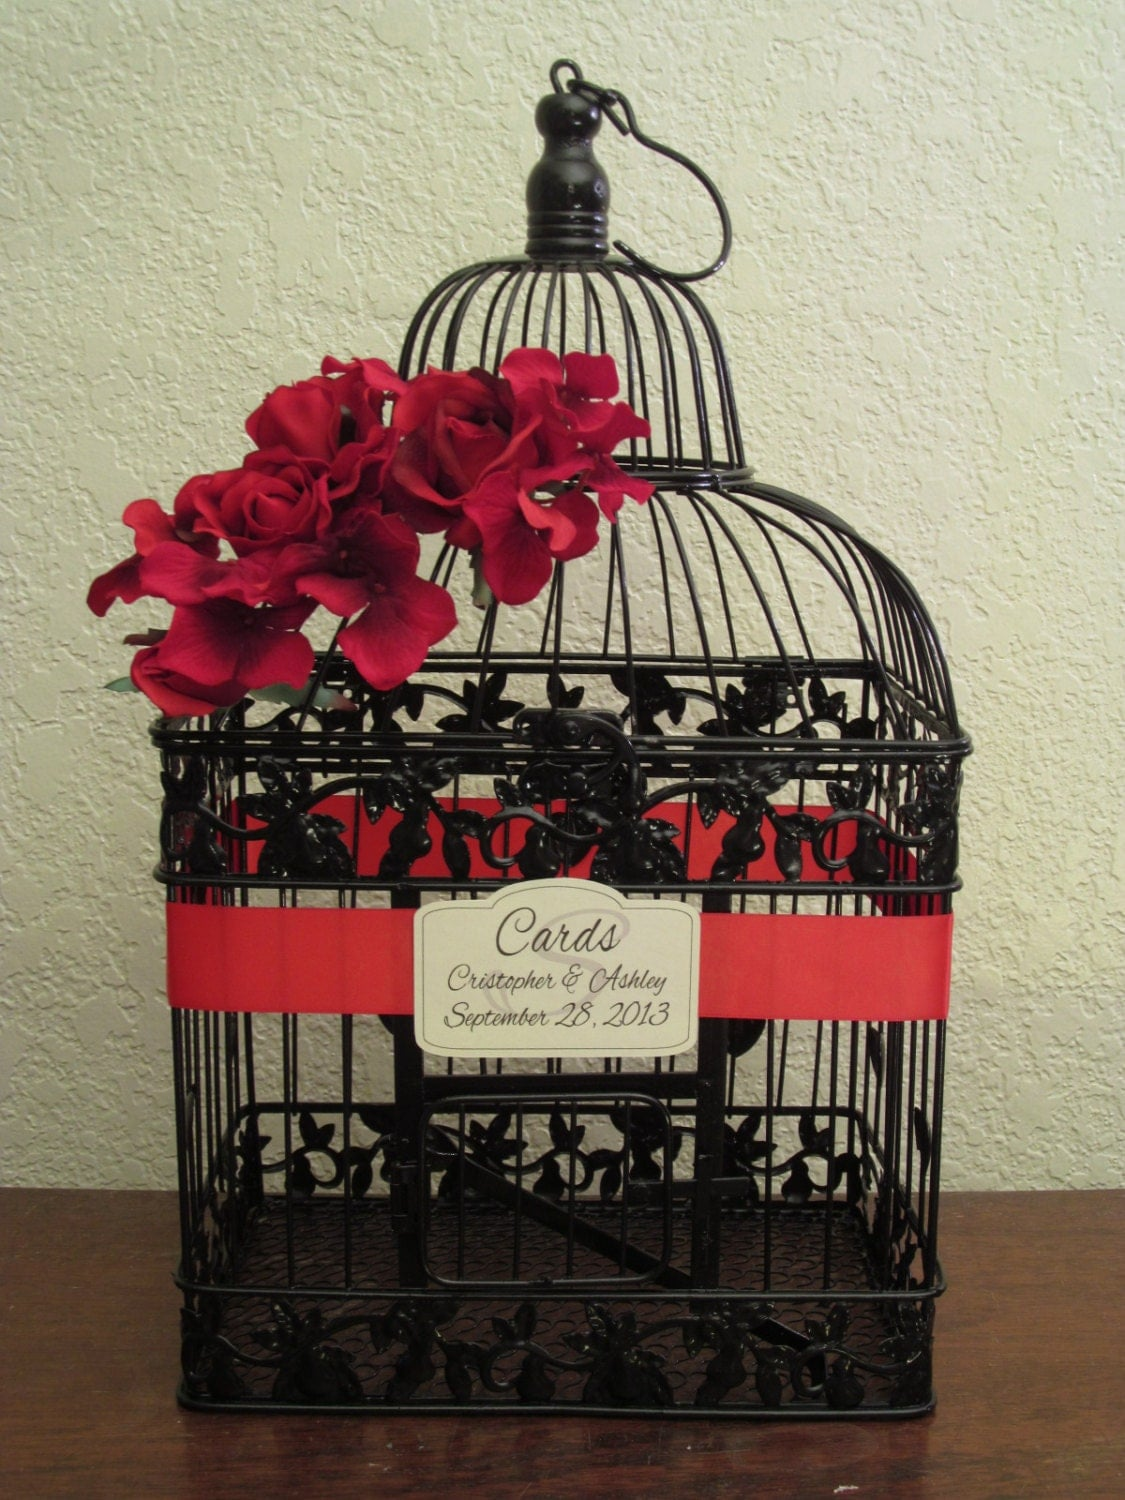 Birdcage For Wedding Gift Cards : Etsy - Your place to buy and sell all things handmade, vintage, and ...